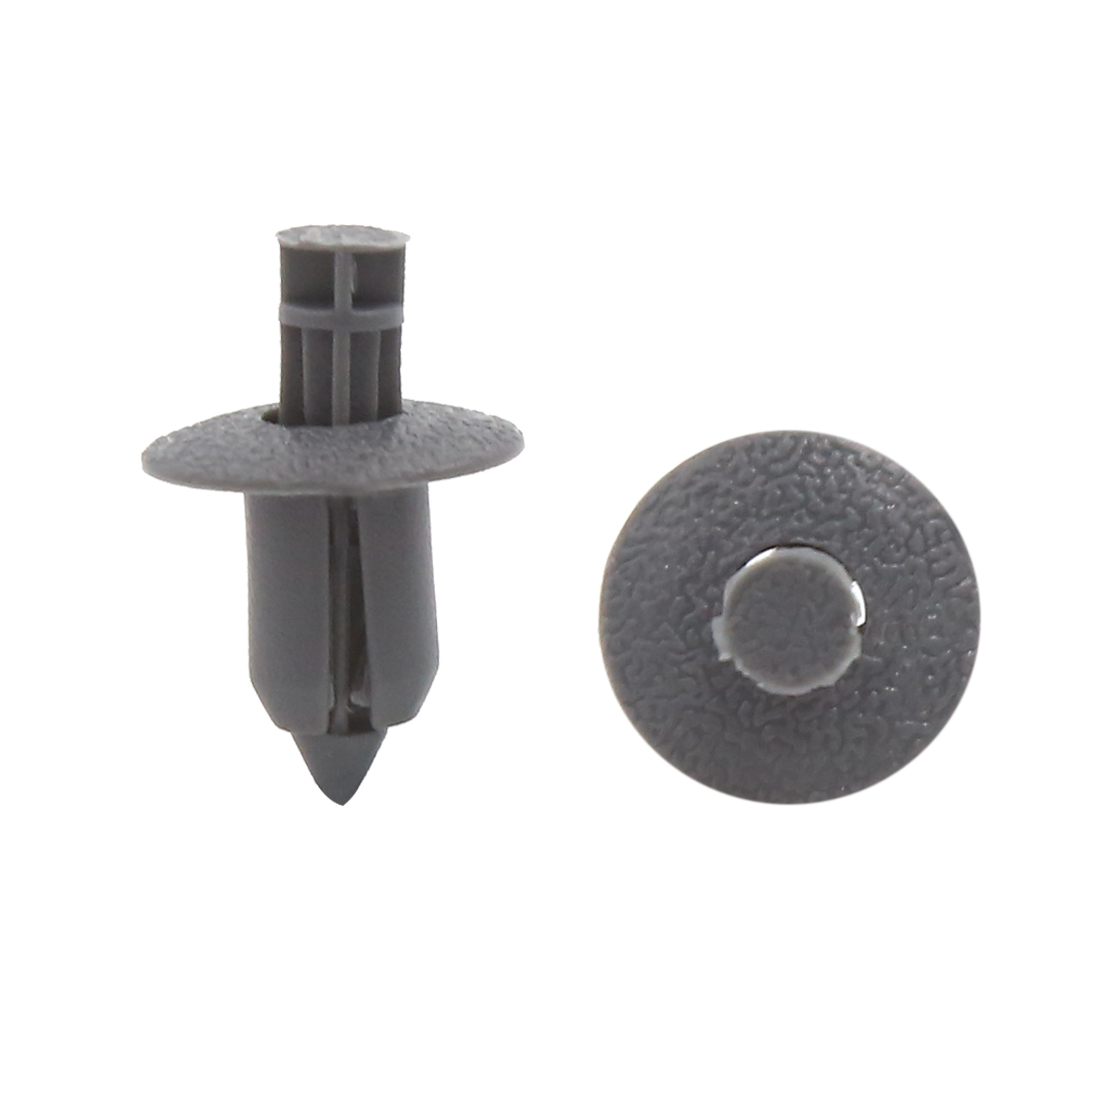 50Pcs 8mm Hole Plastic Push Type Rivet Fastener Door Bumper Pin Clips Gray